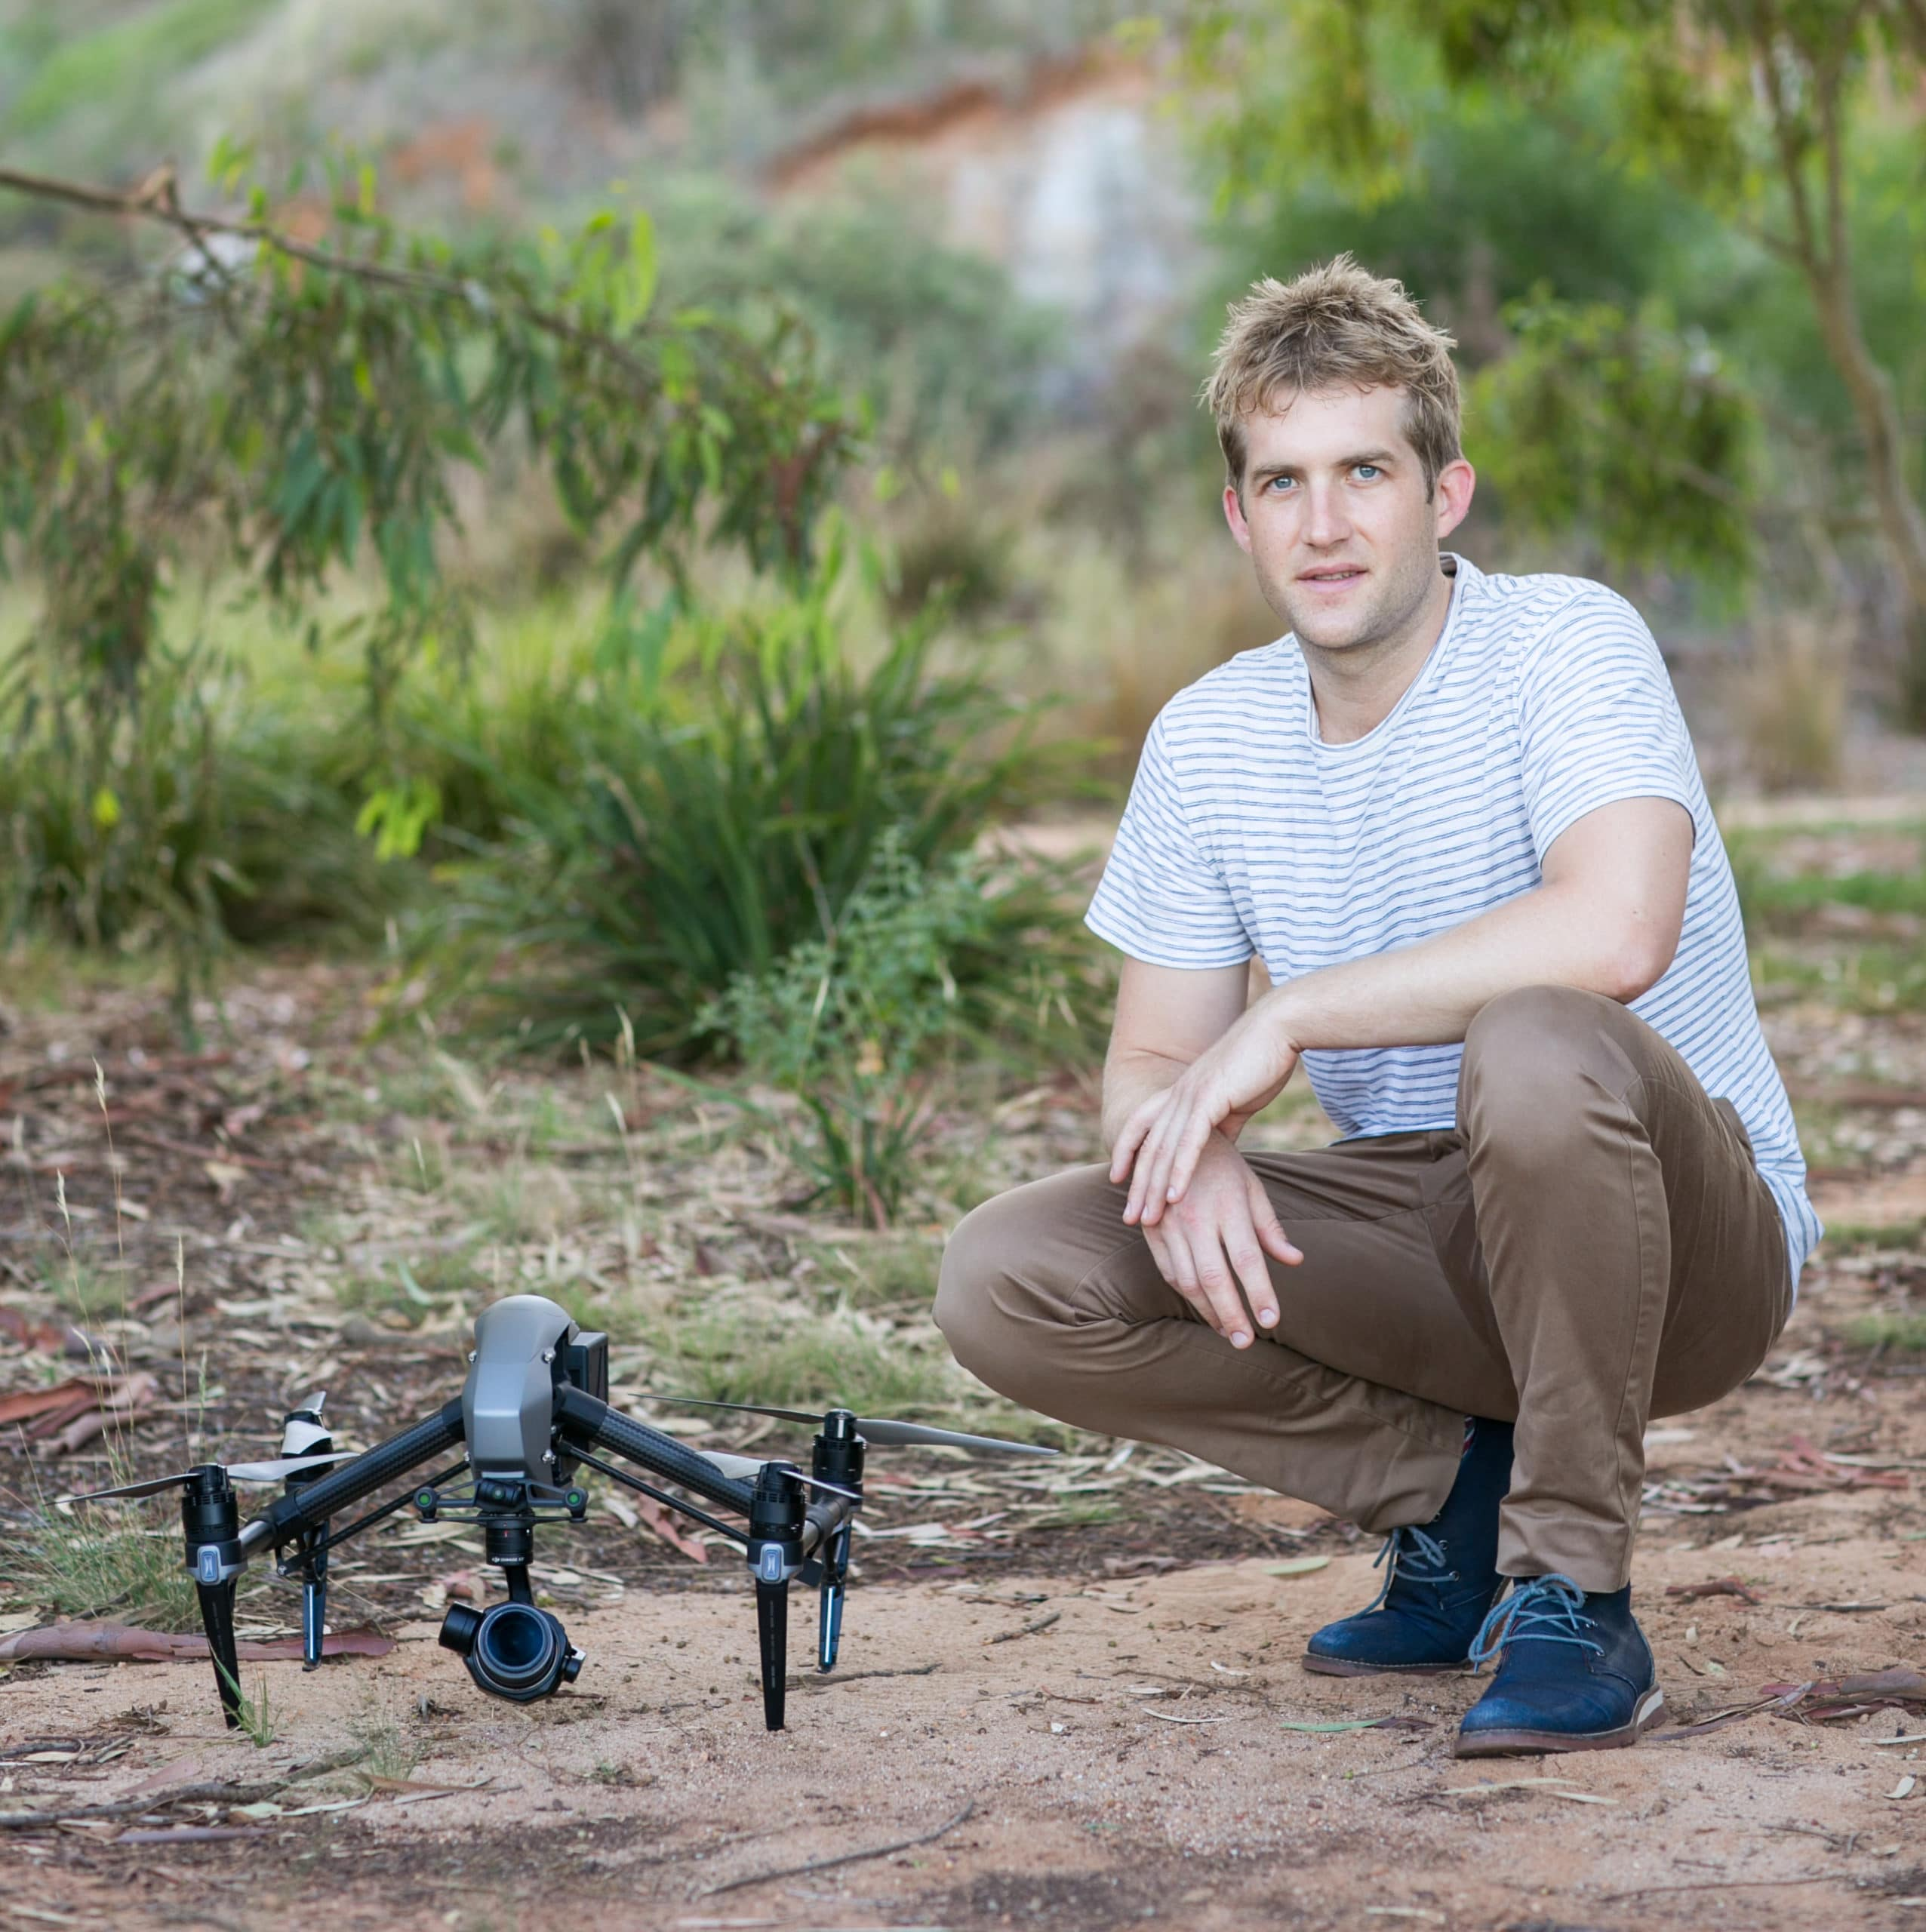 Hayden Smith Portrait Photo with Inspire 2 About Us